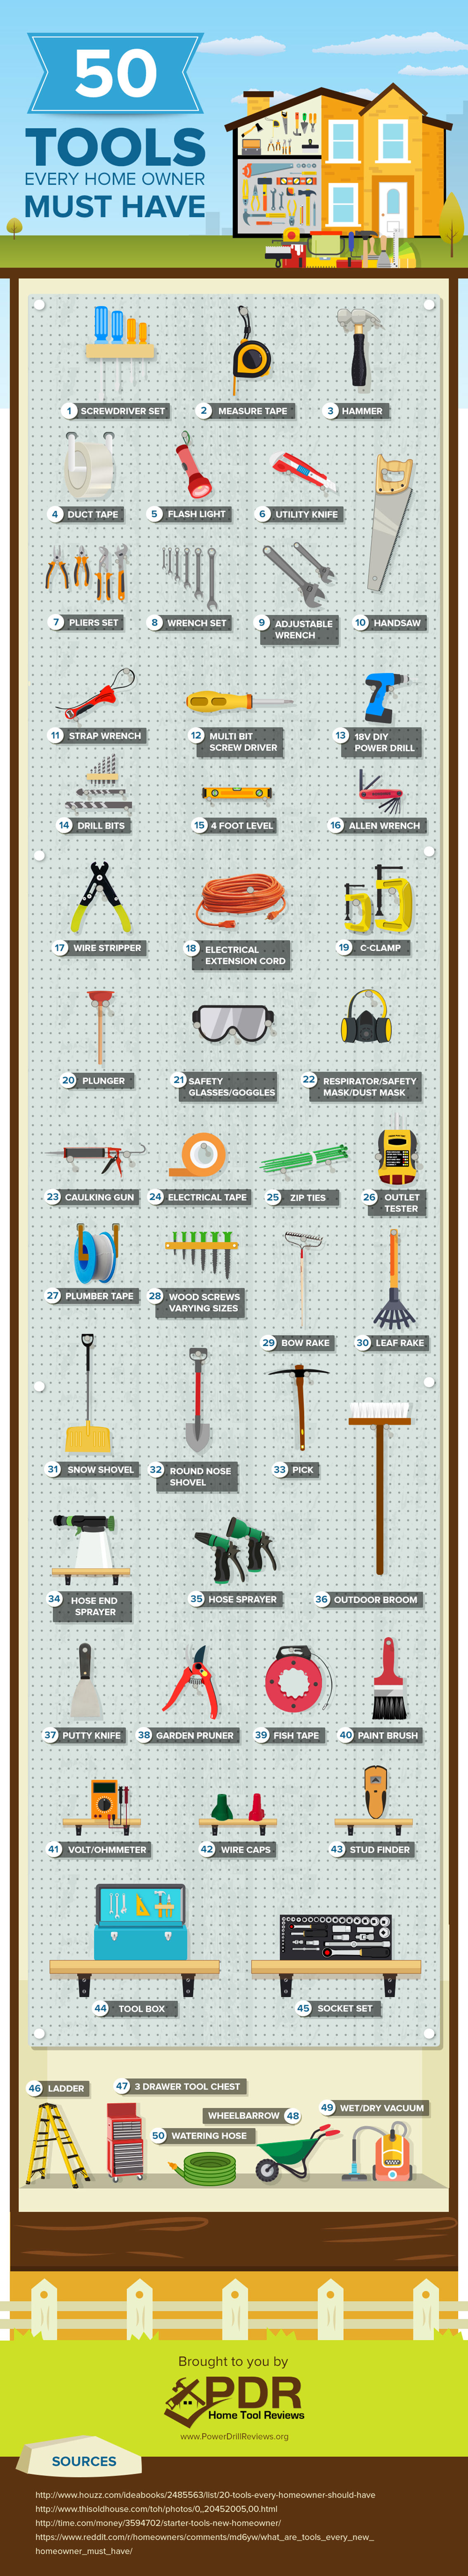 Must-Have-Home-Improvement-Tools-Home-Repair-Infographic